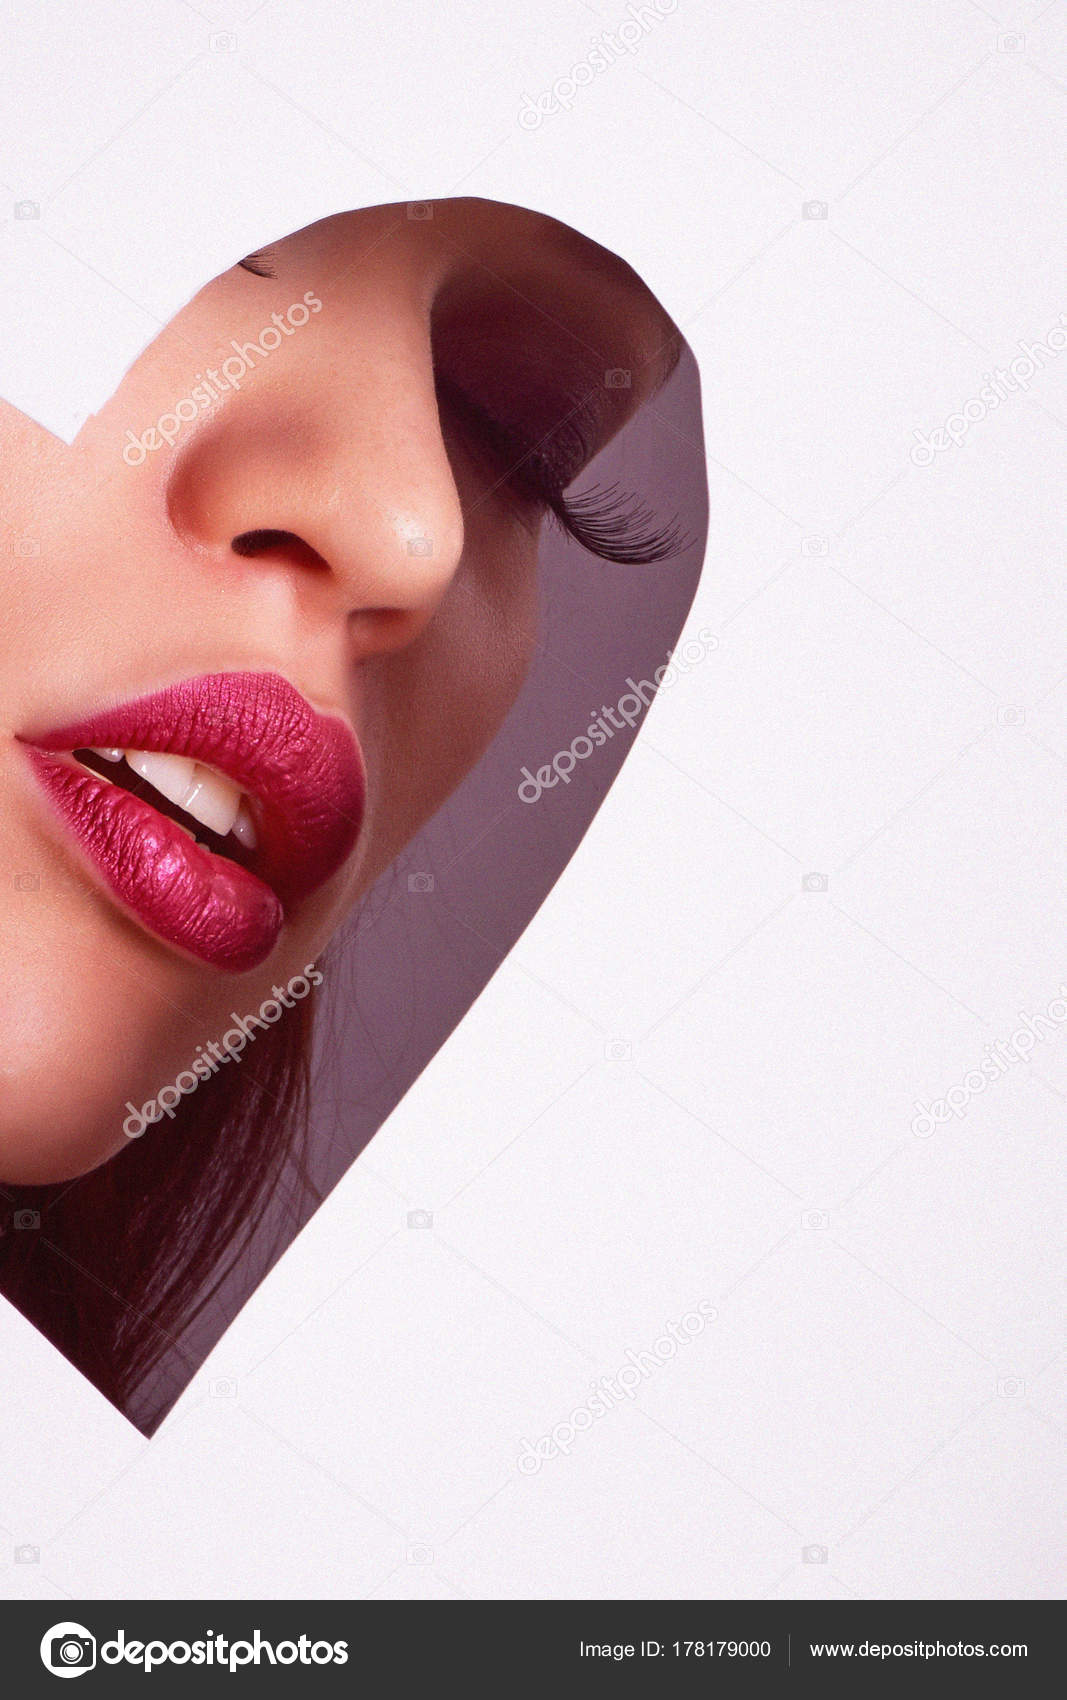 082677c14e8 A large image of a beautiful girl with false eyelashes and plump lips.